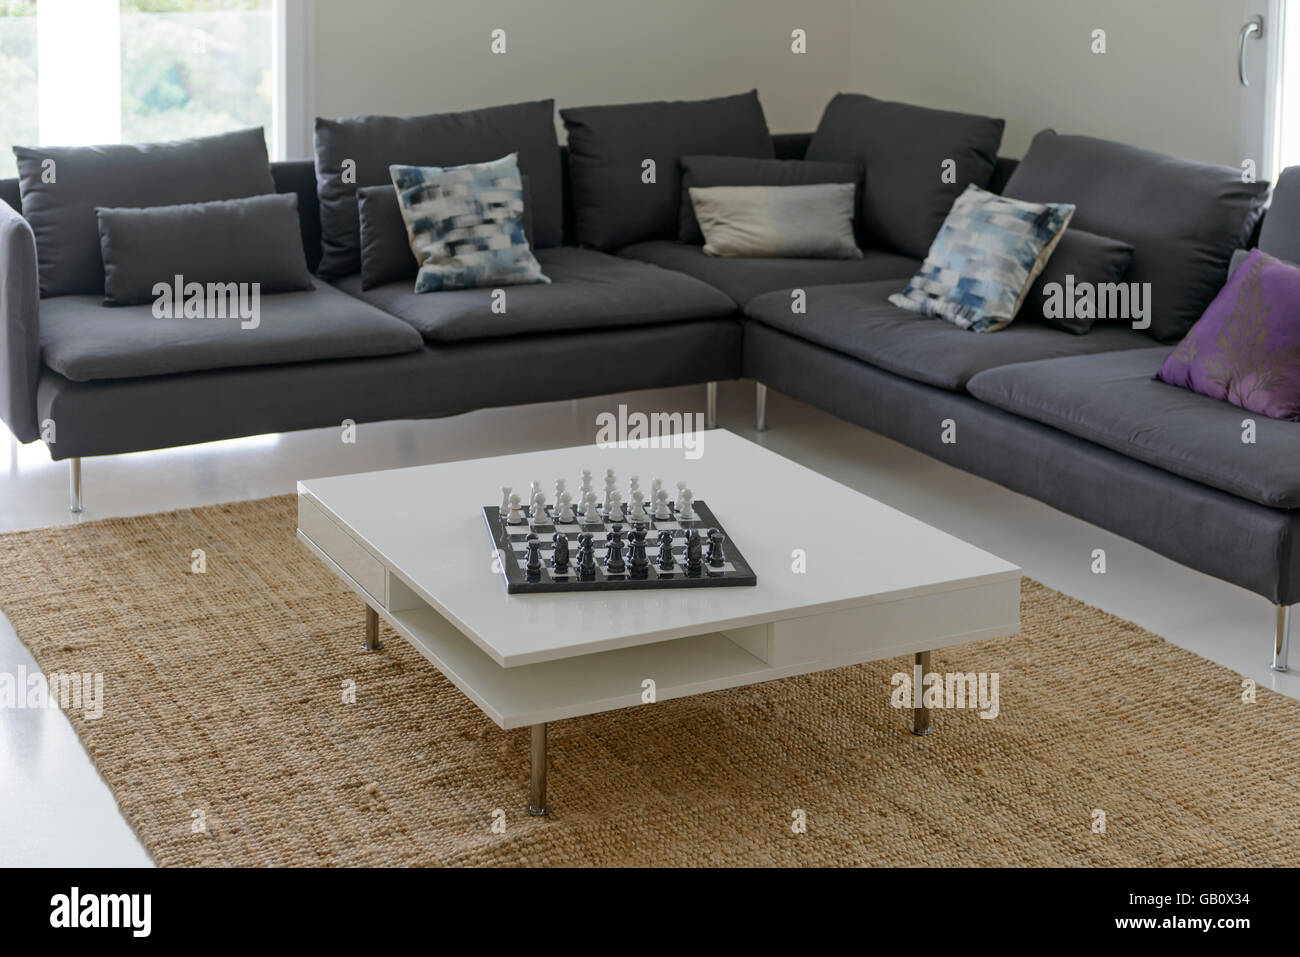 L Shaped Sofa Stock Photos L Shaped Sofa Stock Images Alamy